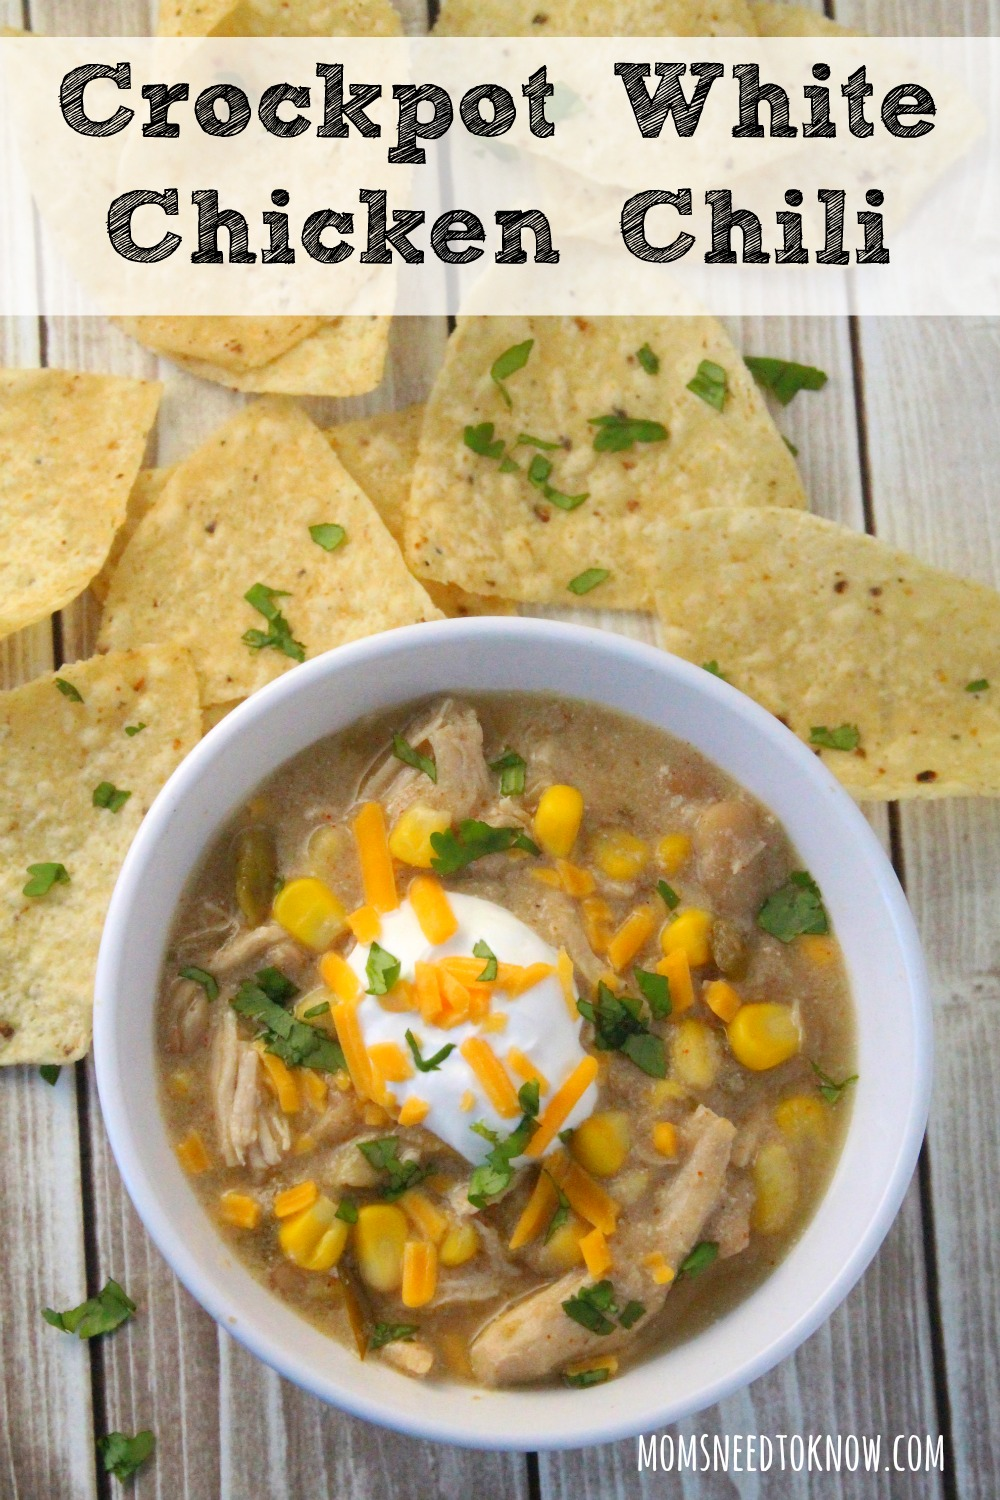 This white bean chicken chili cooks up in your slow cooker and is so delicious! It's the perfect change from your regular chili or soups!